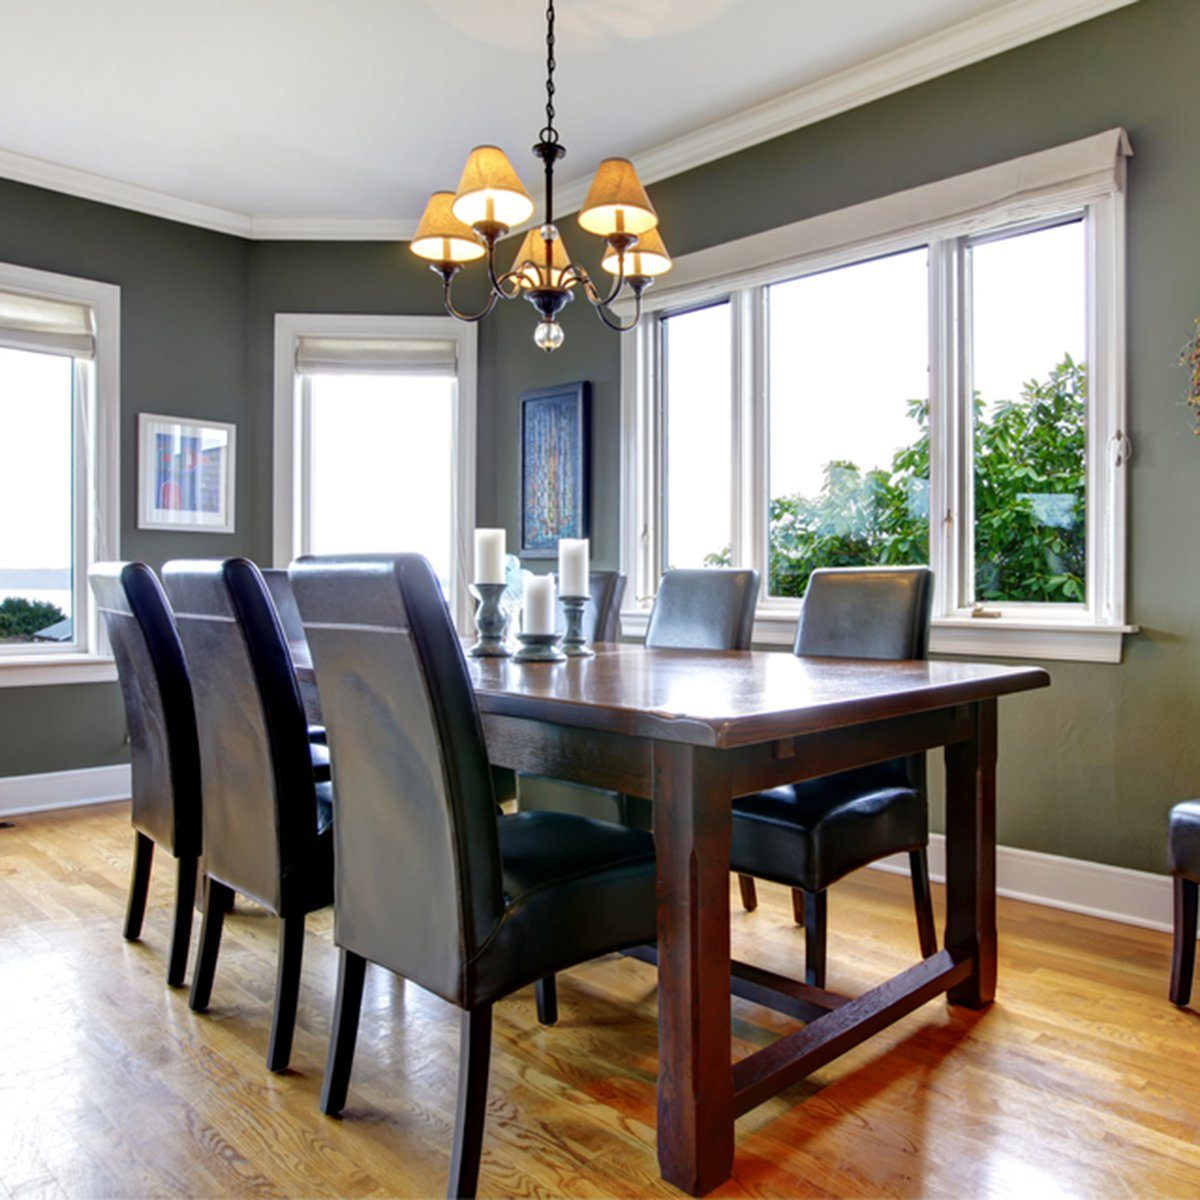 Large green dining room with leather chairs and large windows.